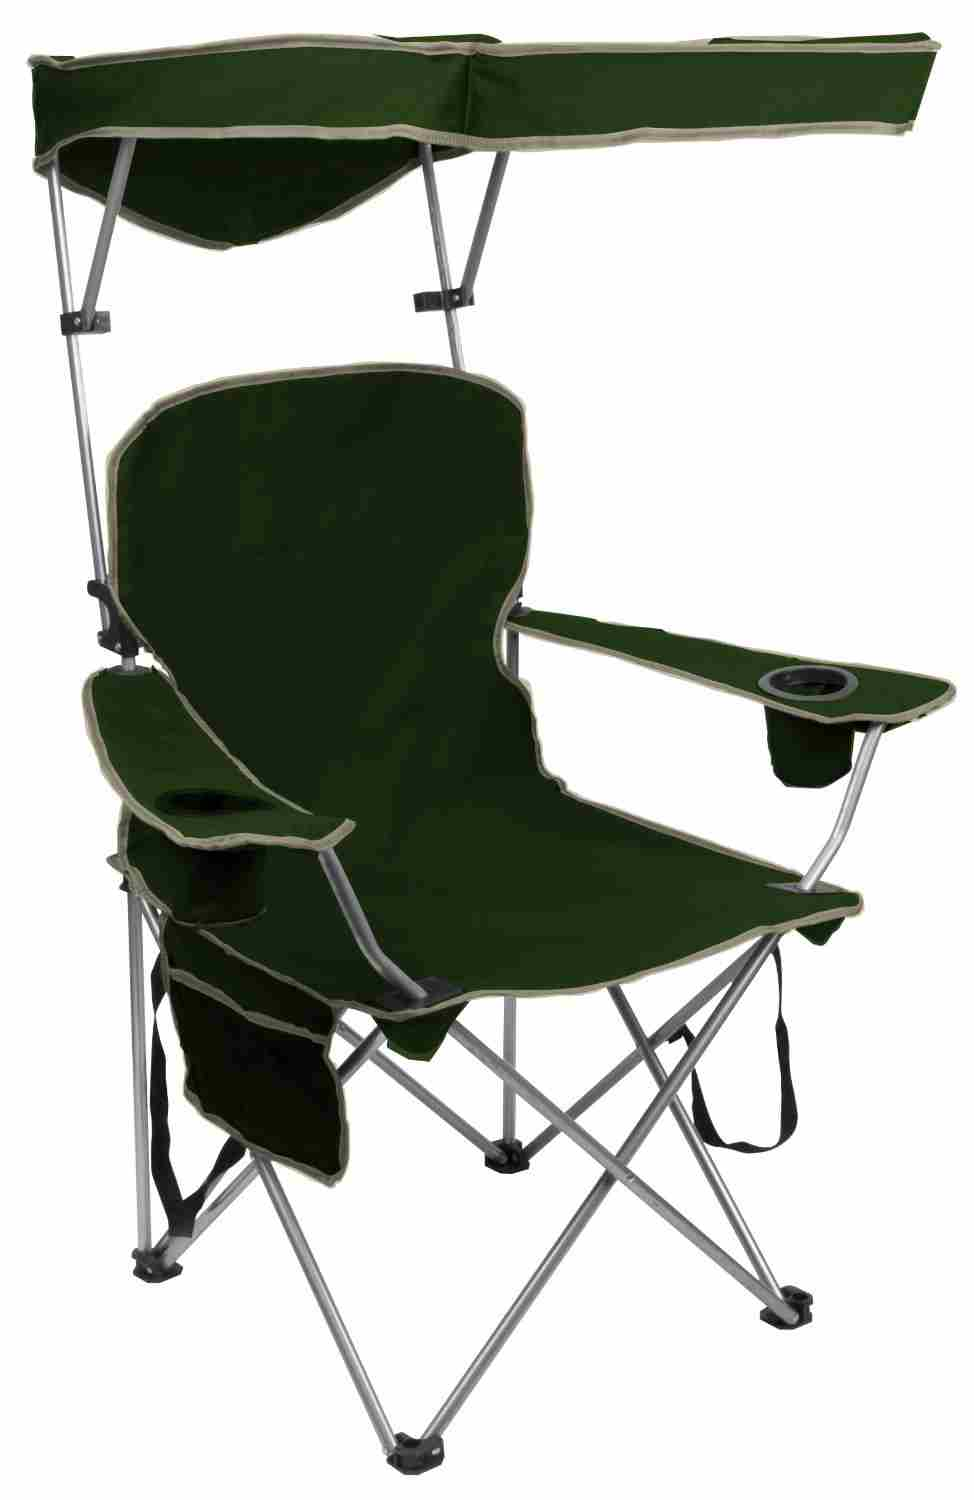 Fold Up Chair With Canopy Camping Chair With Shade